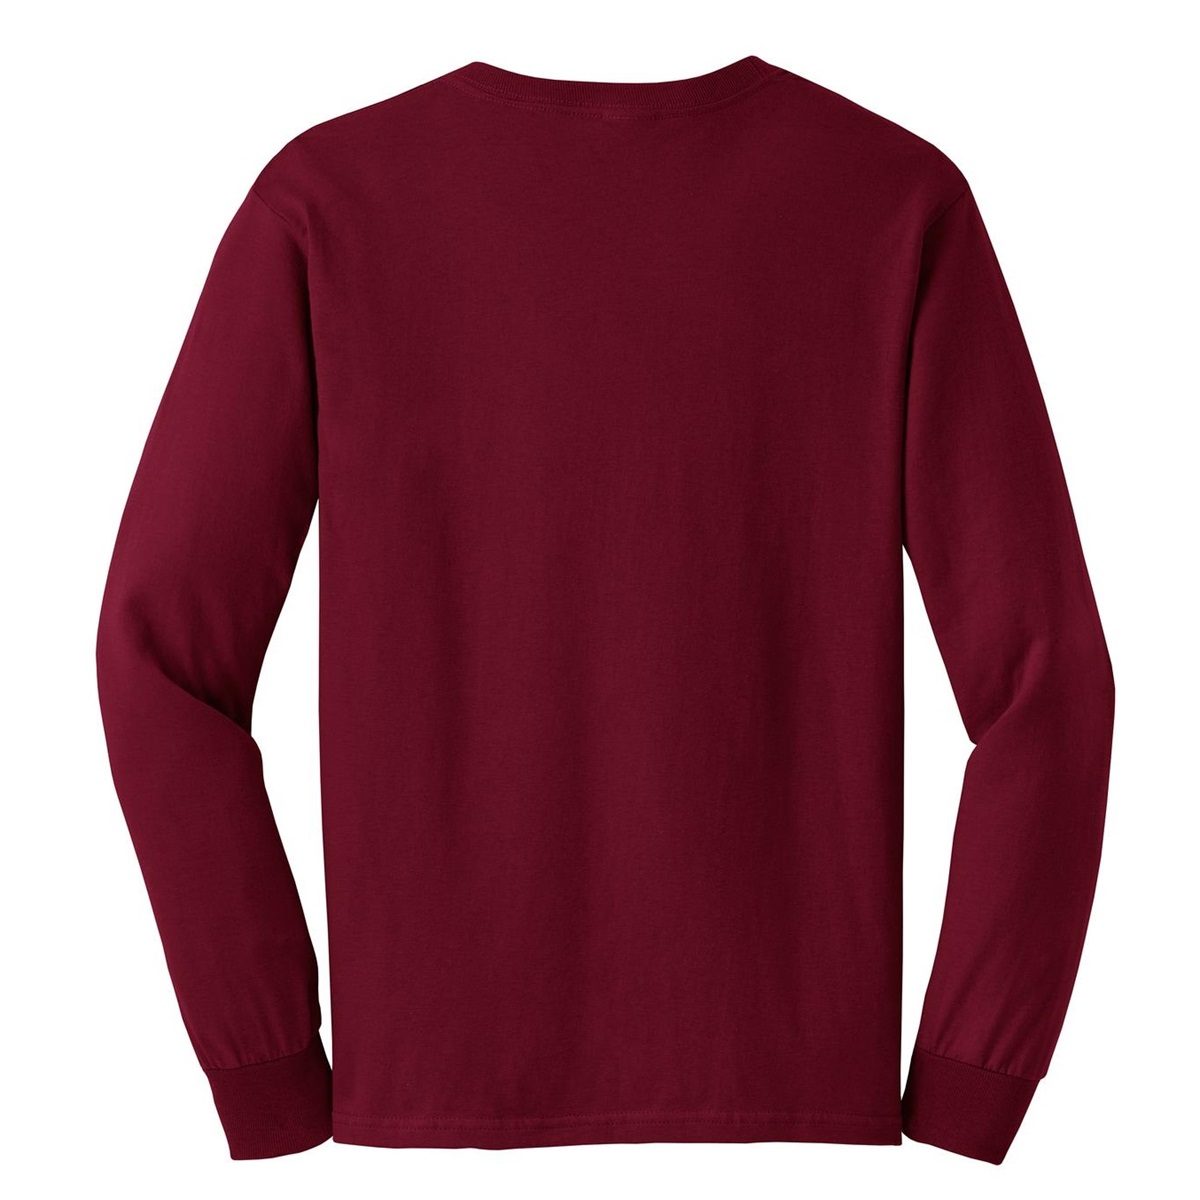 Gildan g2400 ultra cotton long sleeve t shirt cardinal for Cardinal color t shirts